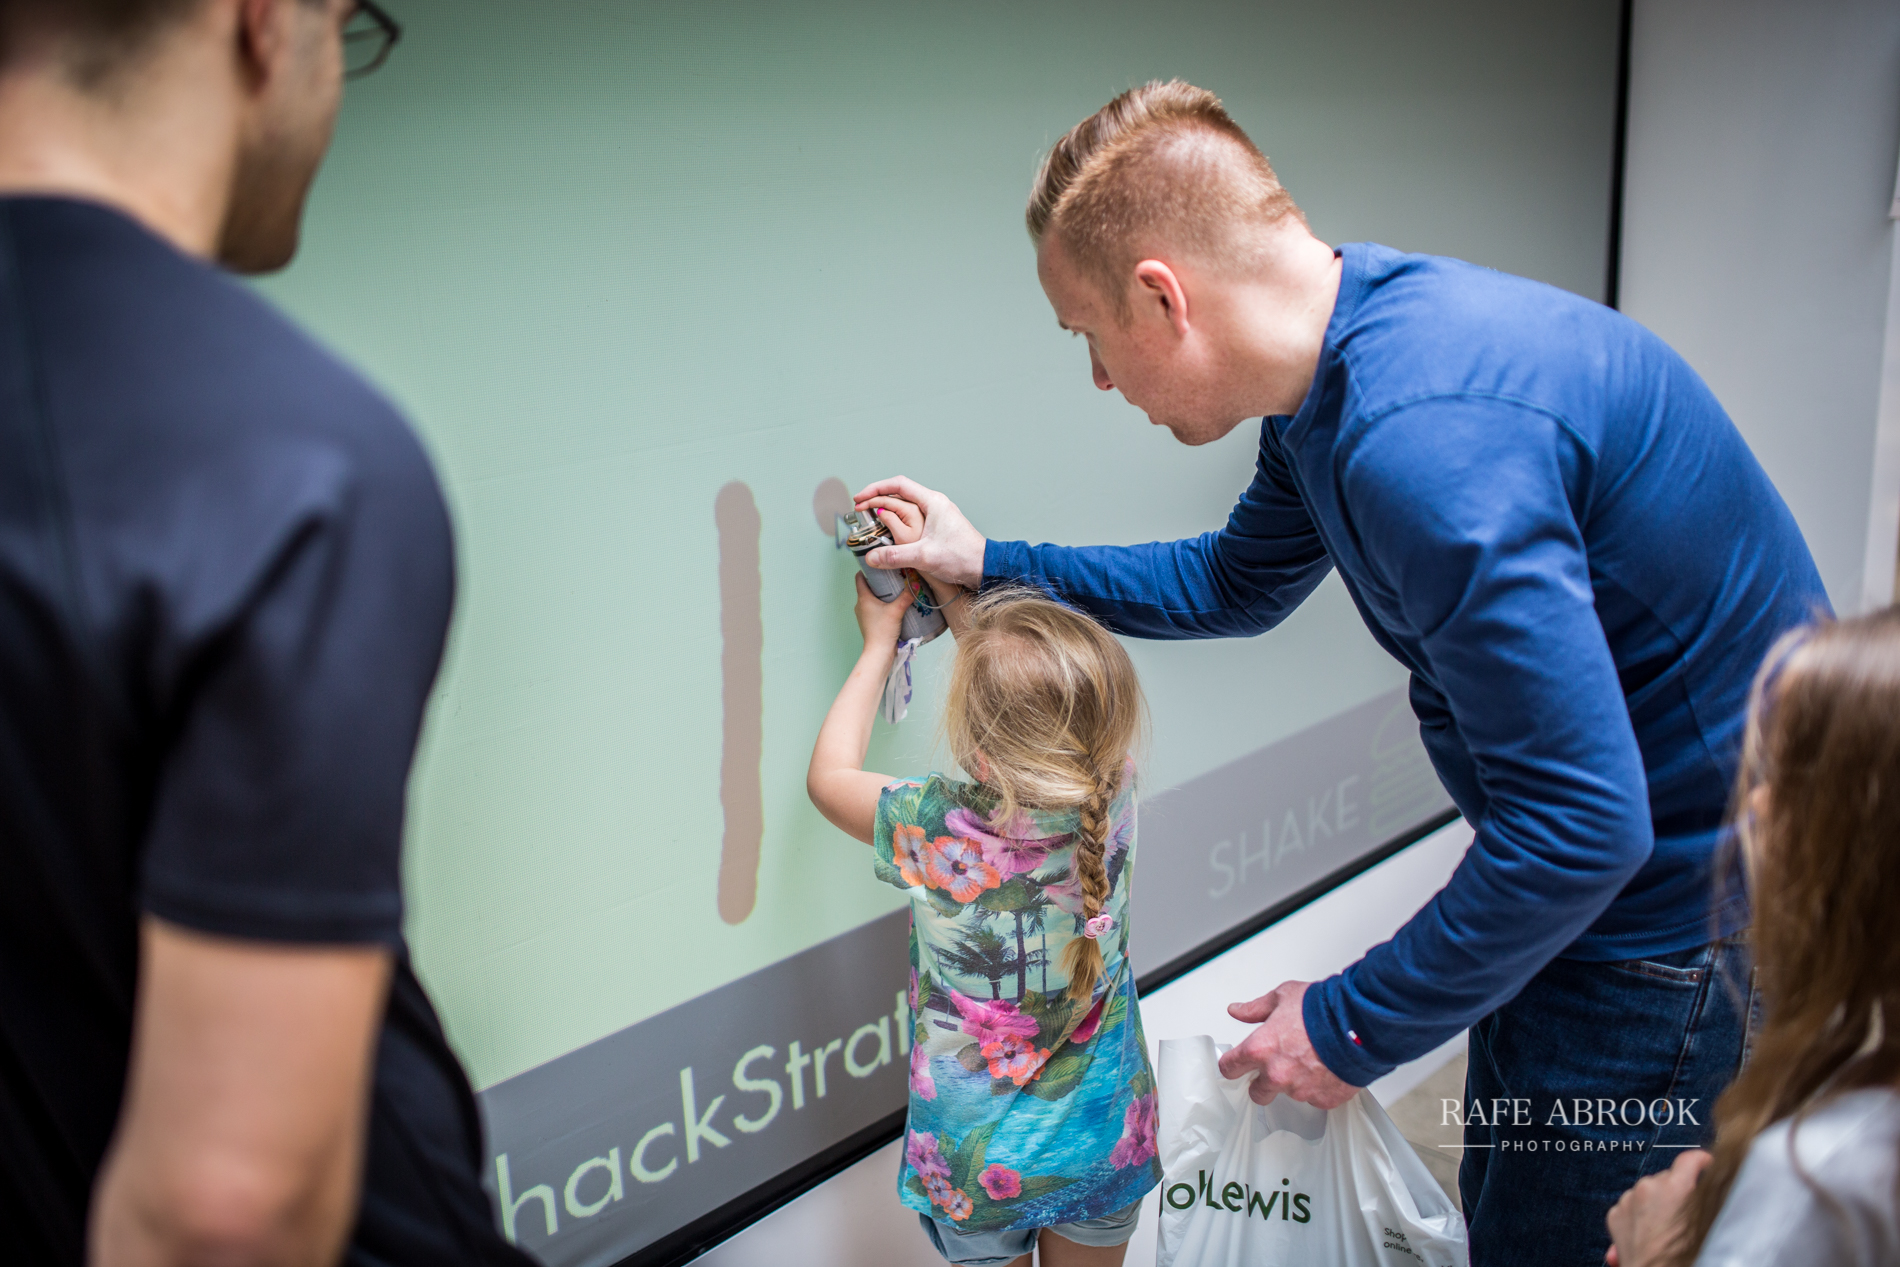 shake shack uk westfield stratford london experiential basketball-1080.jpg